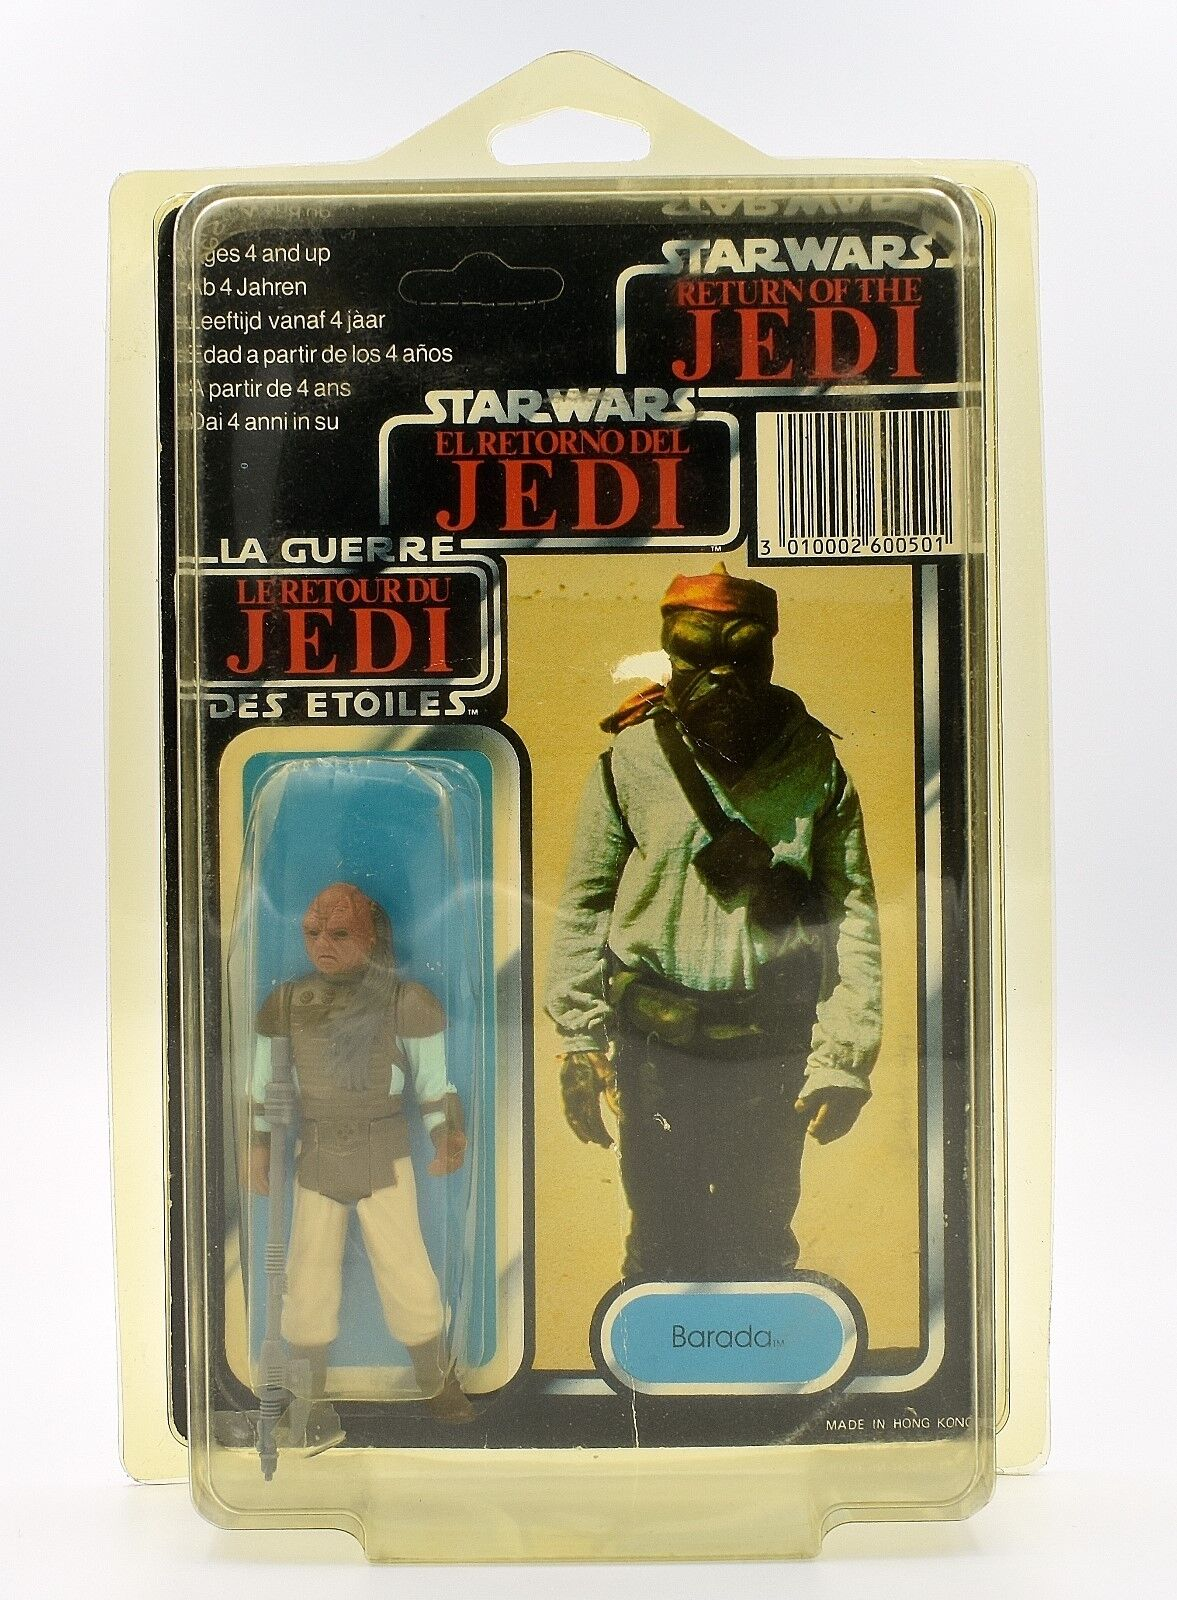 Star Wars Return of The Jedi Tri-Logo - Barada / Weequay Error Miscard VERY RARE